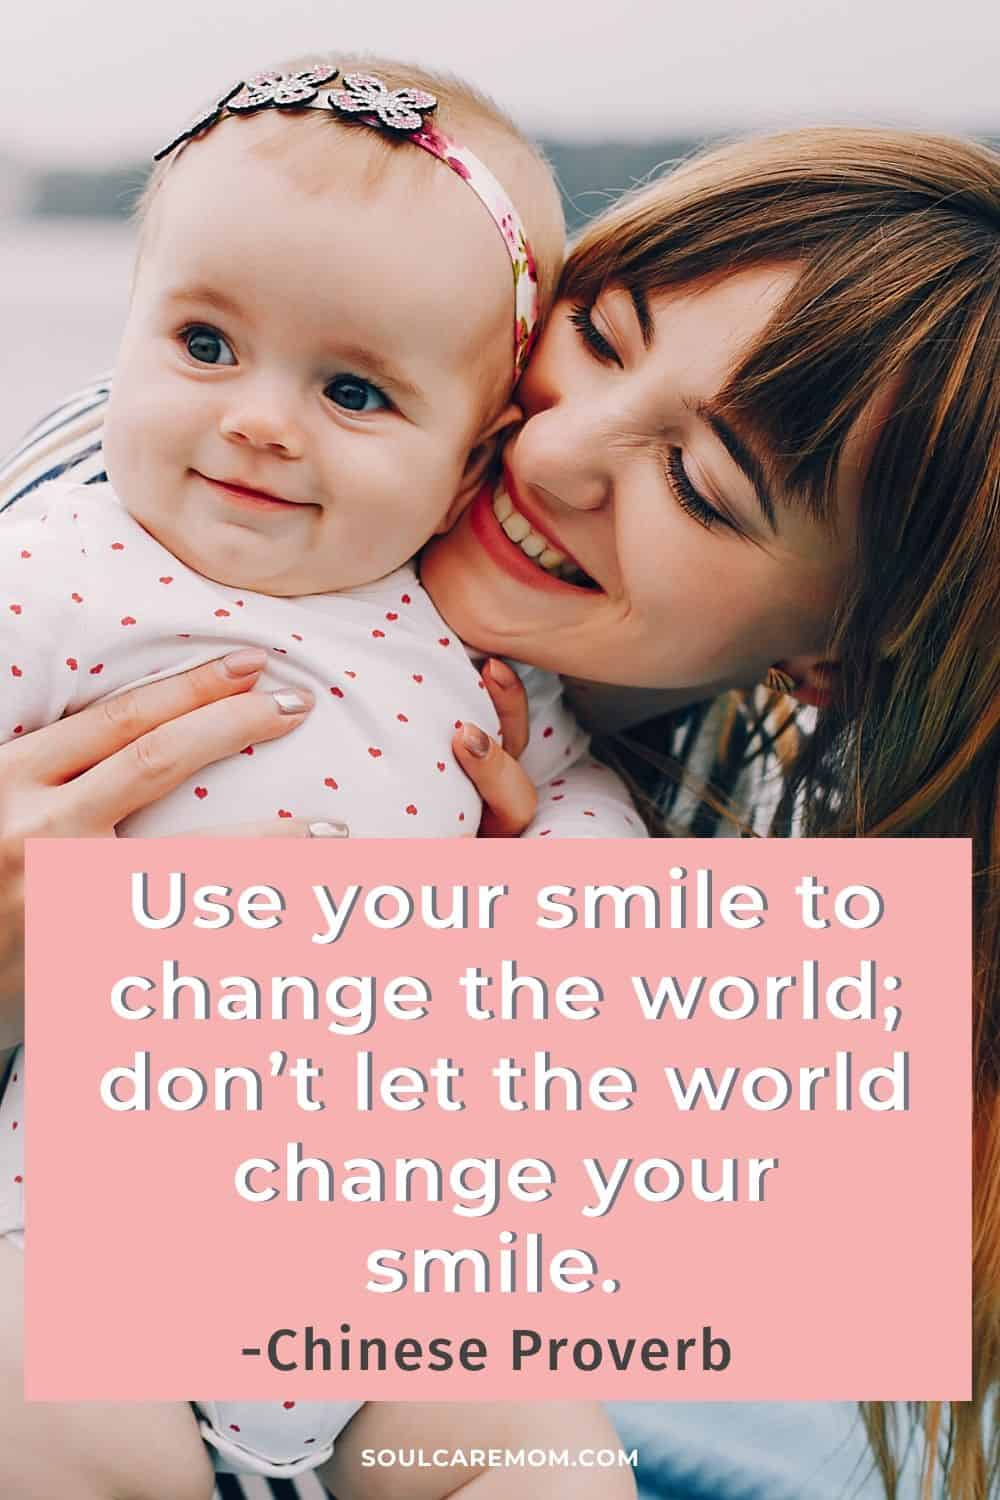 Use your smile to change the world; don't let the world change your smile. -Chinese Proverb - Smile Quote - Soul Care Mom